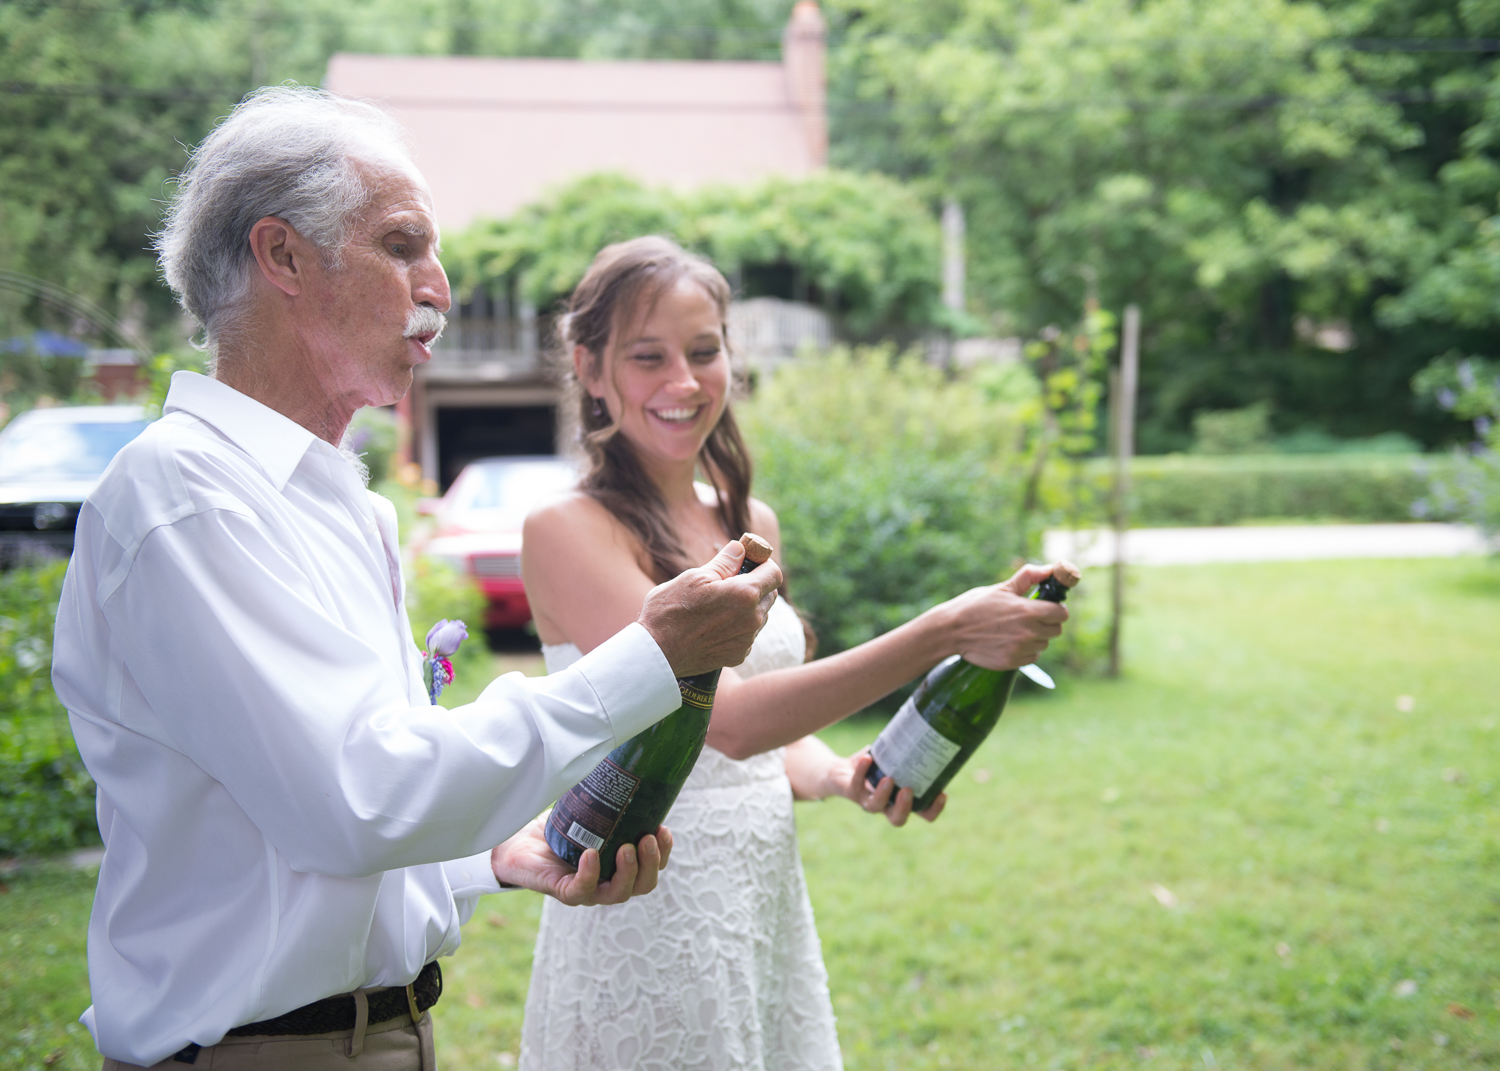 Aaron's dad, Joe, teaches Ada how to open a bottle of champagne.